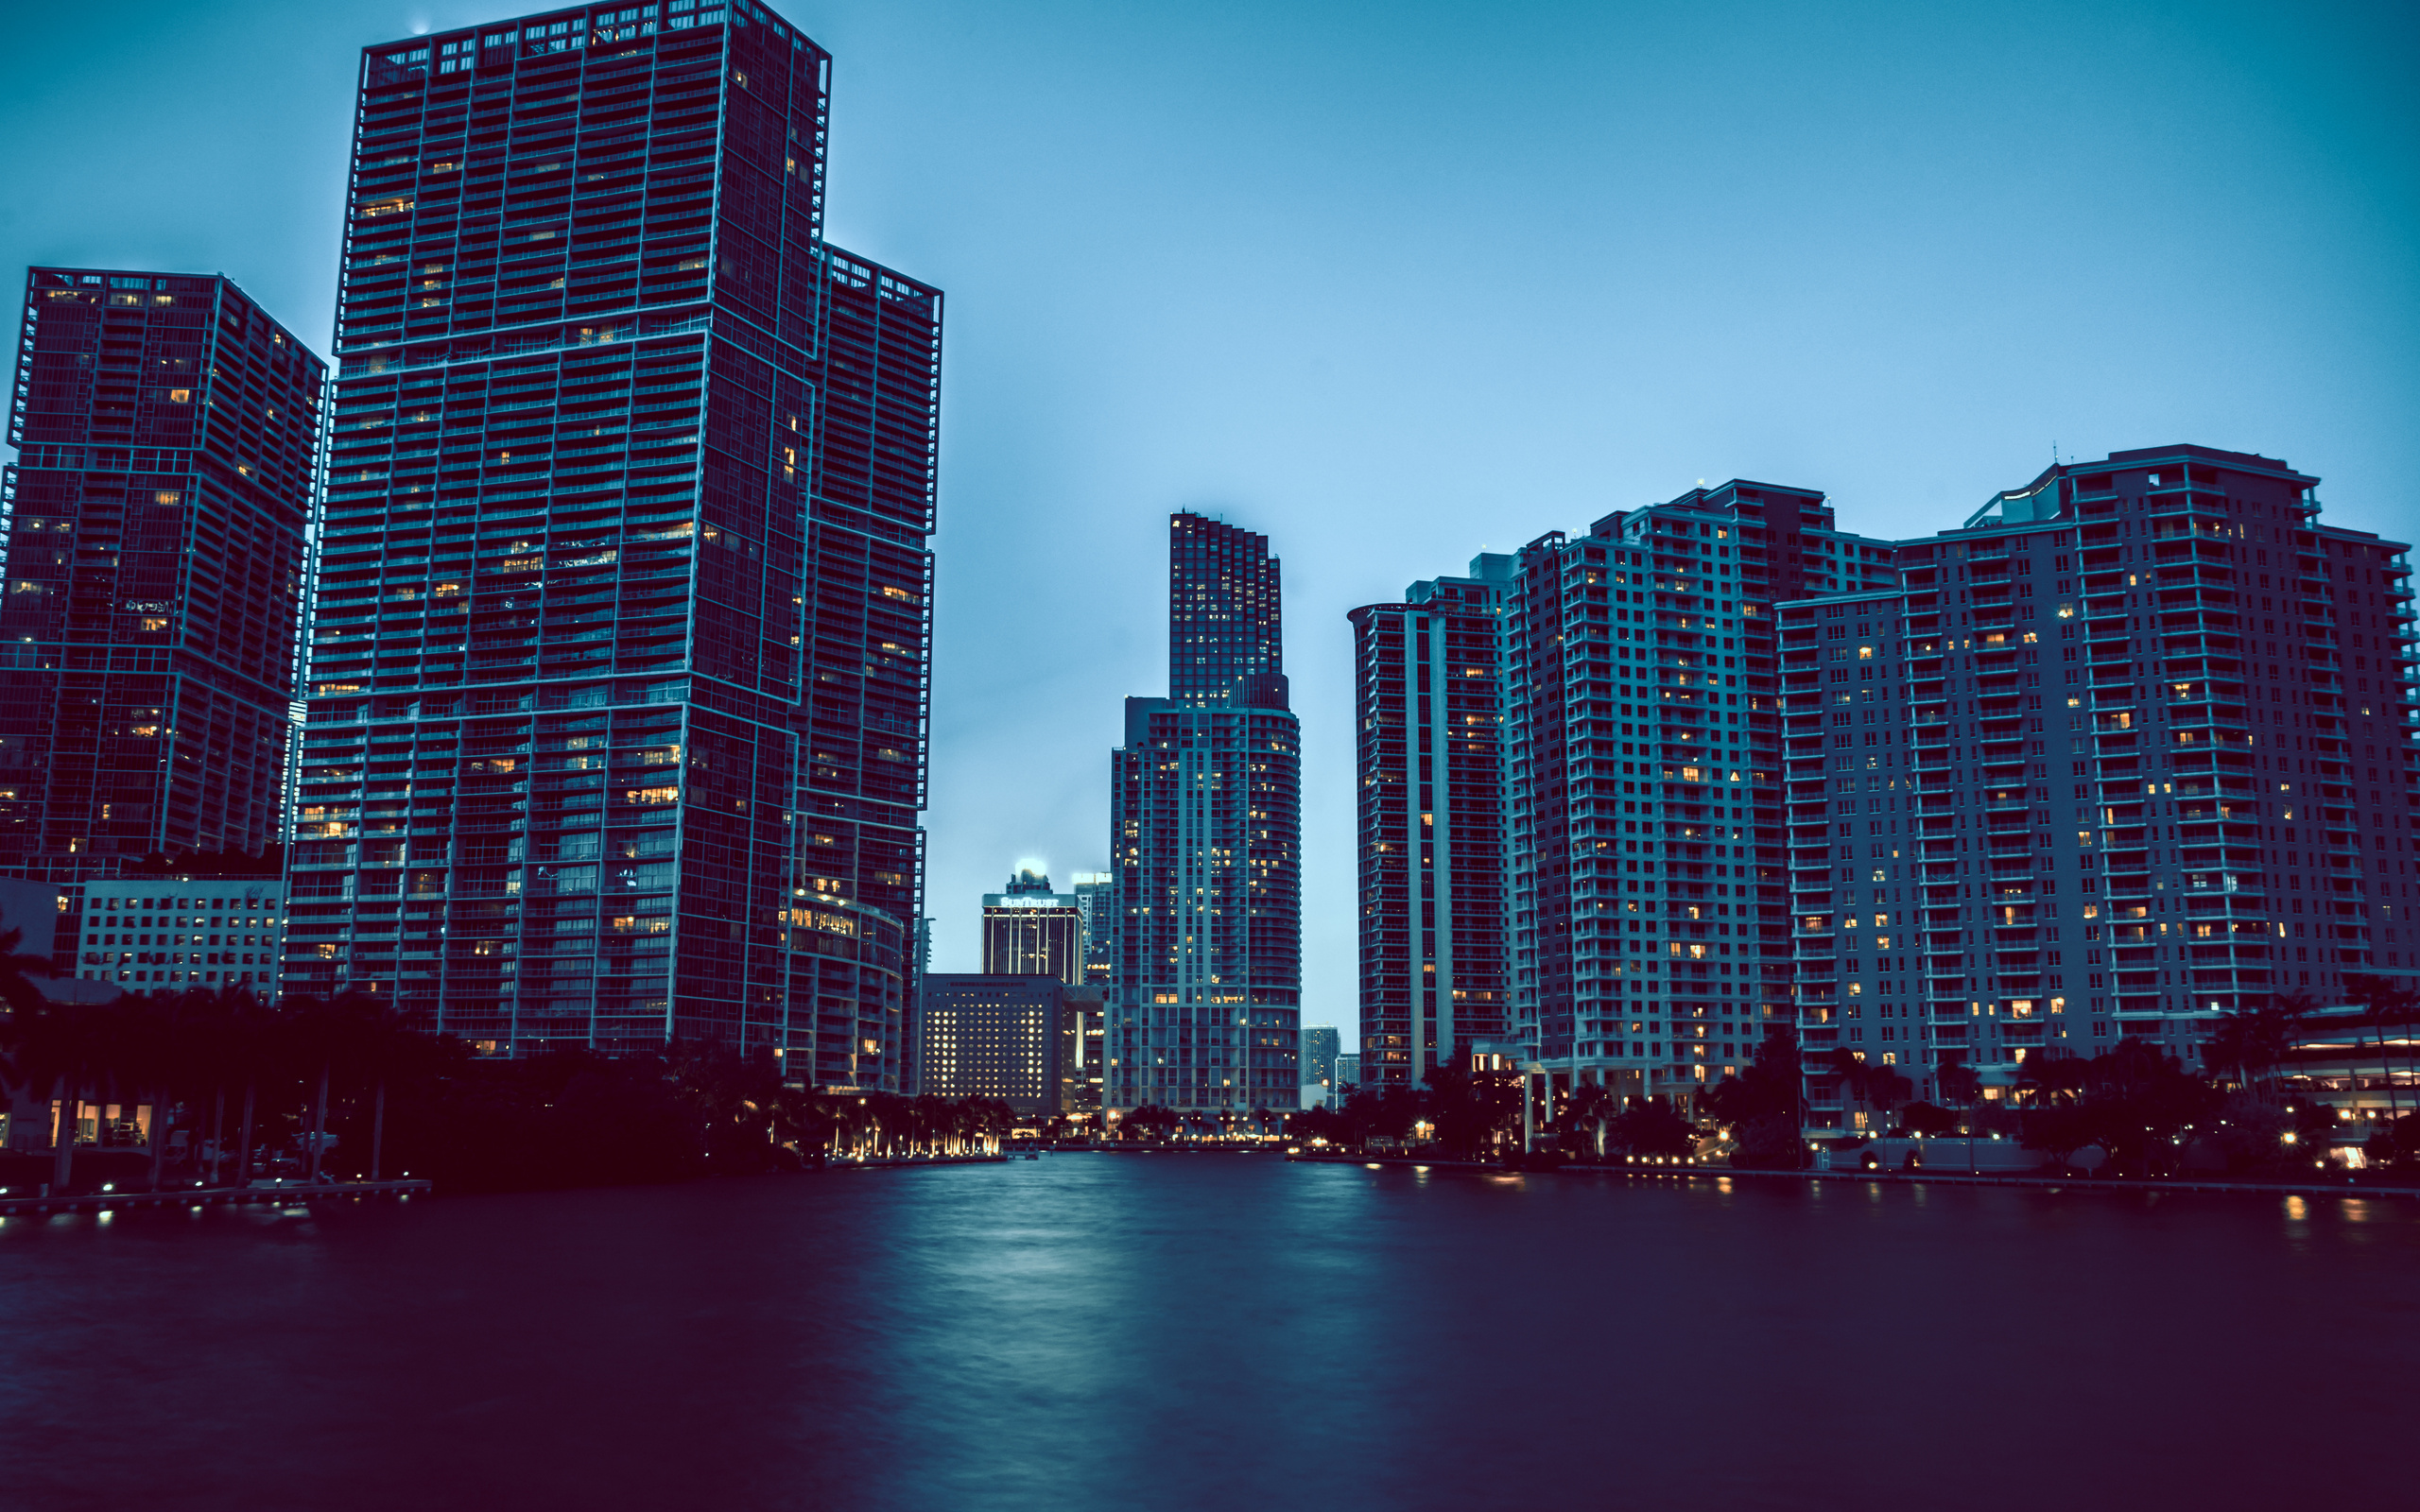 lights florida night miami florida miami wallpaper | 2560x1600